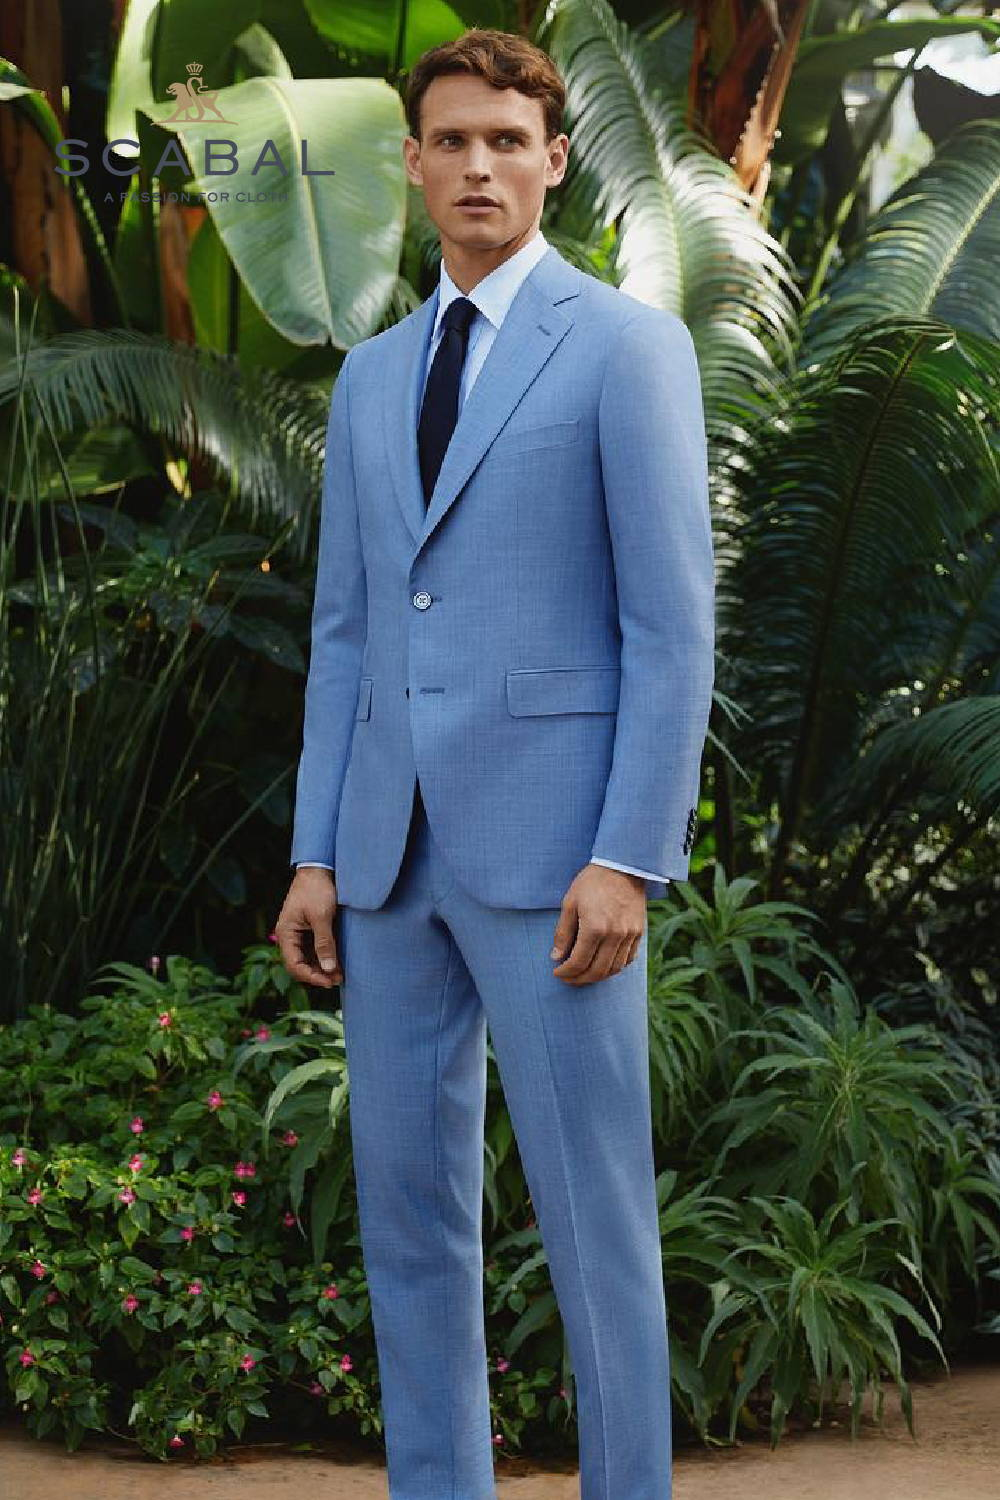 the-lancelot-hong-kong-bespoke-tailor-gallery-formal-8